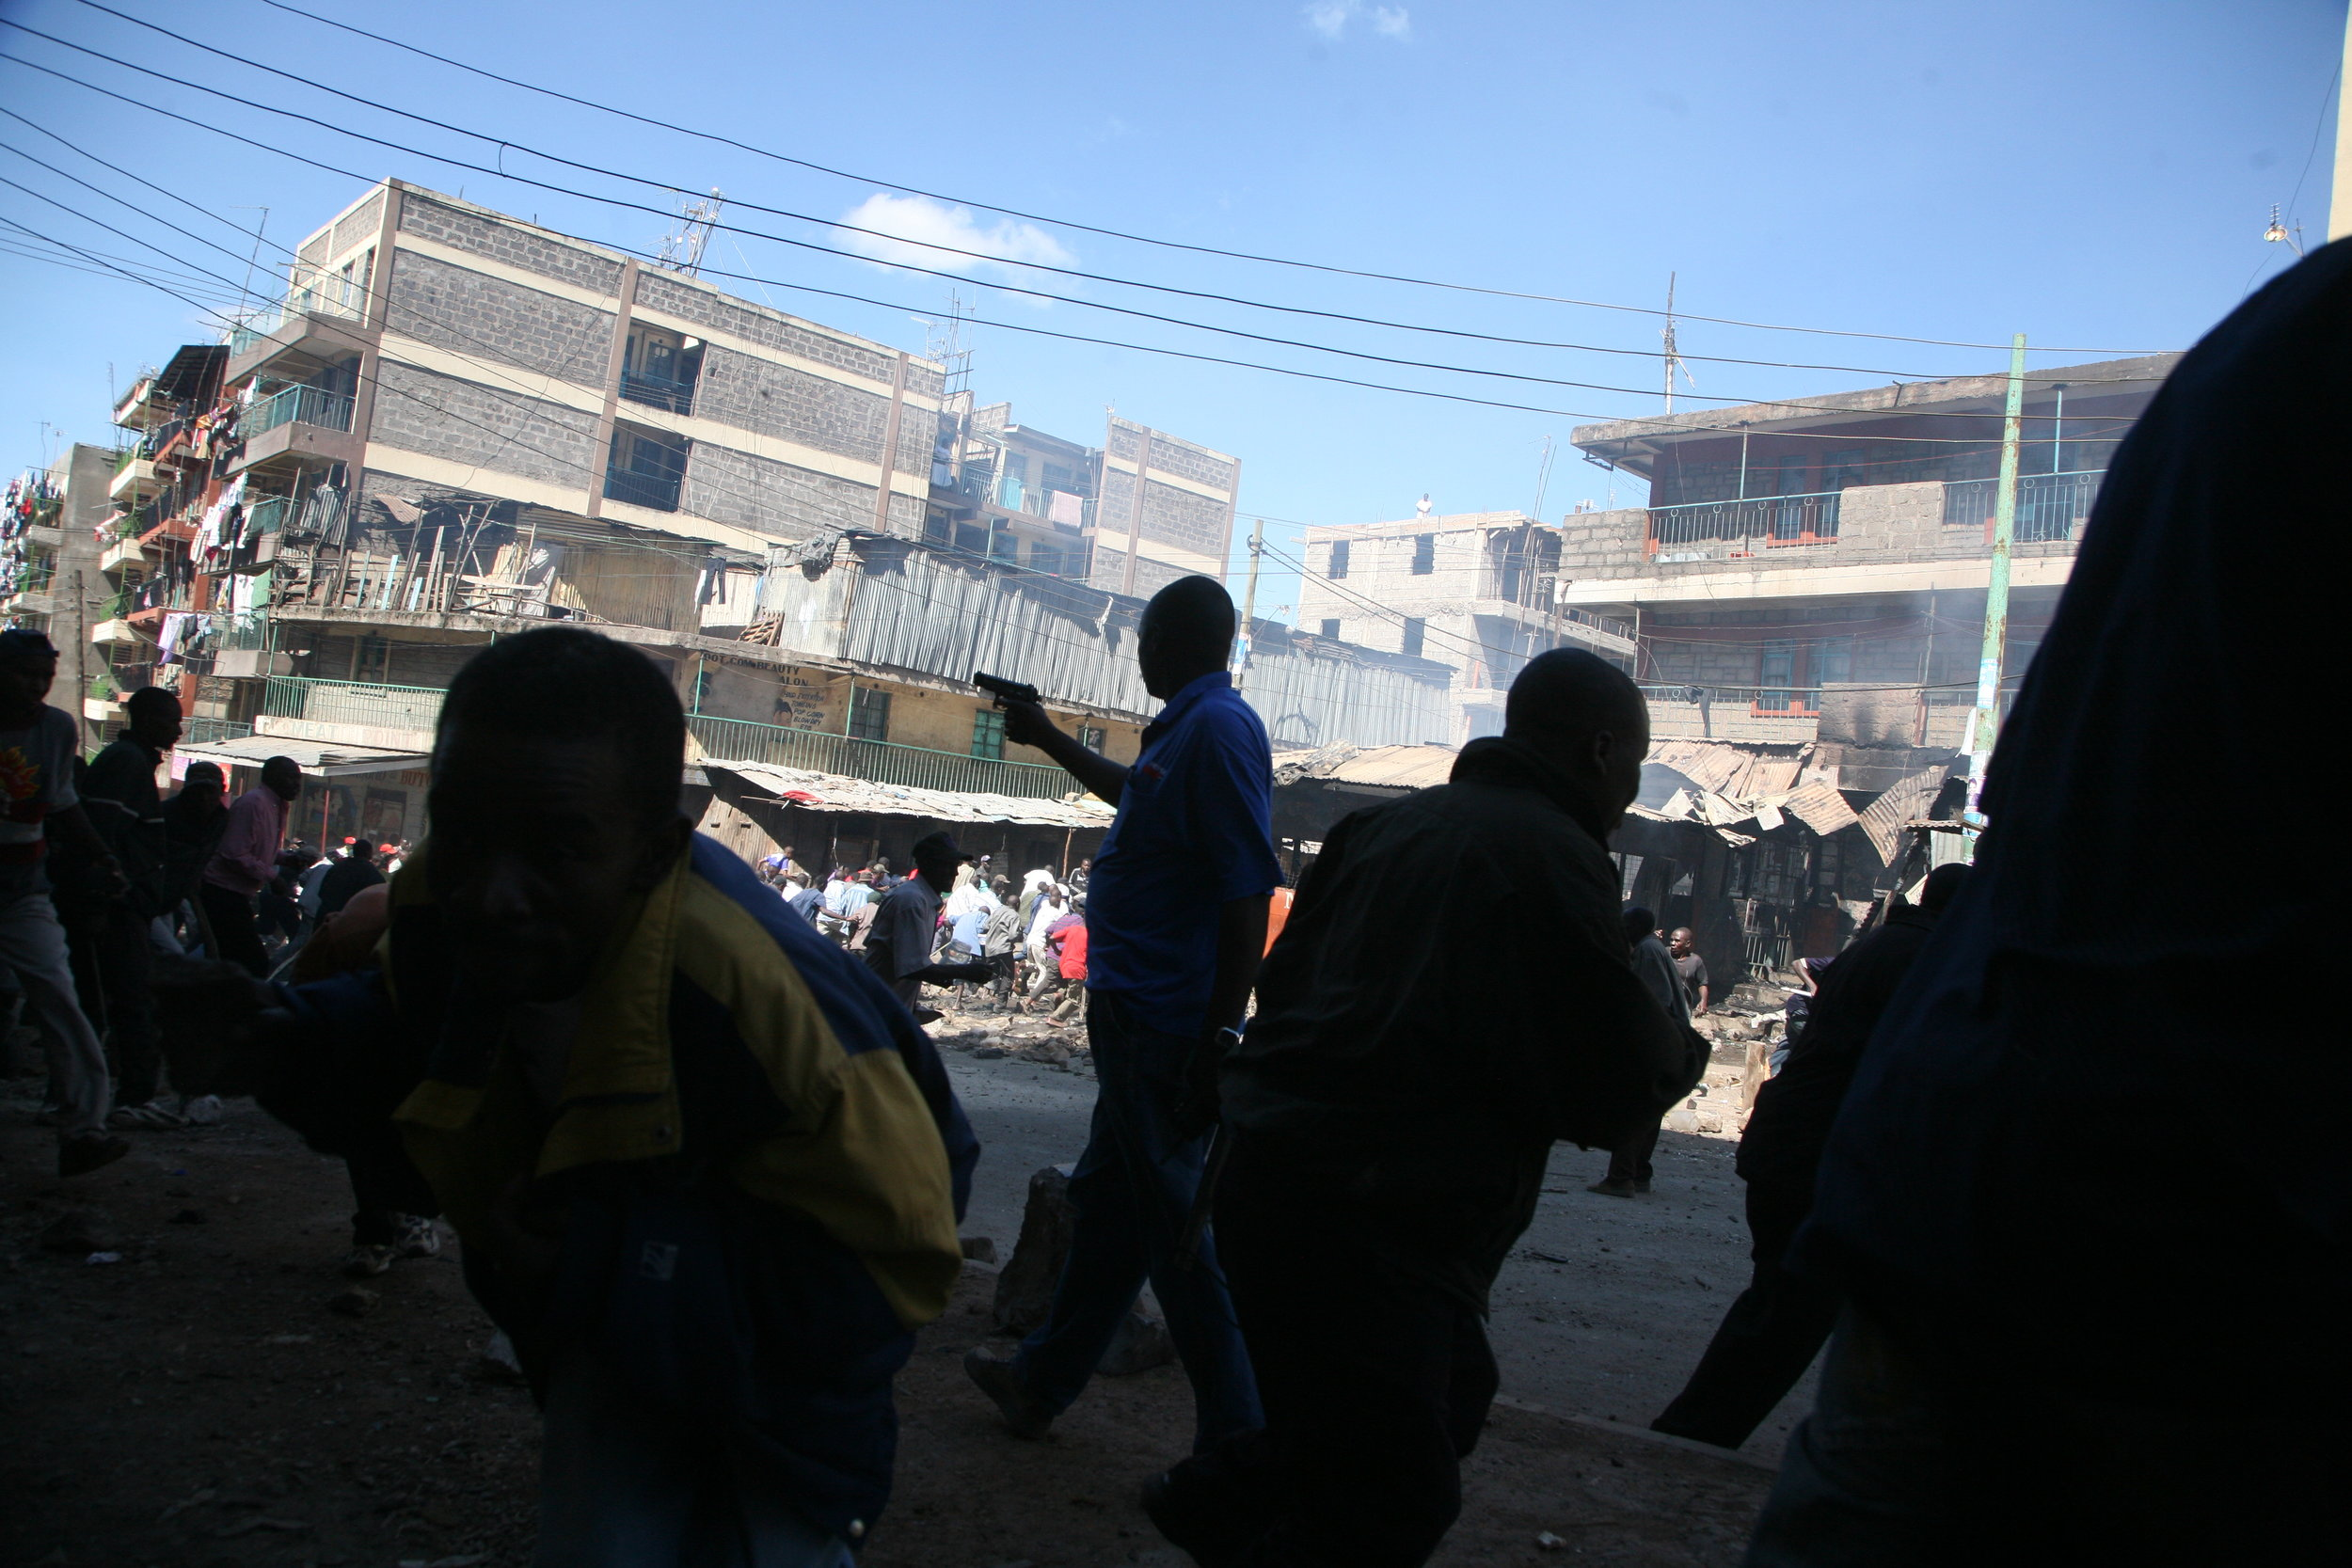 Protestors take cover as an undercover police officer pulls out a hand gun during clashes between rival ethnic groups in the Mathare slum.